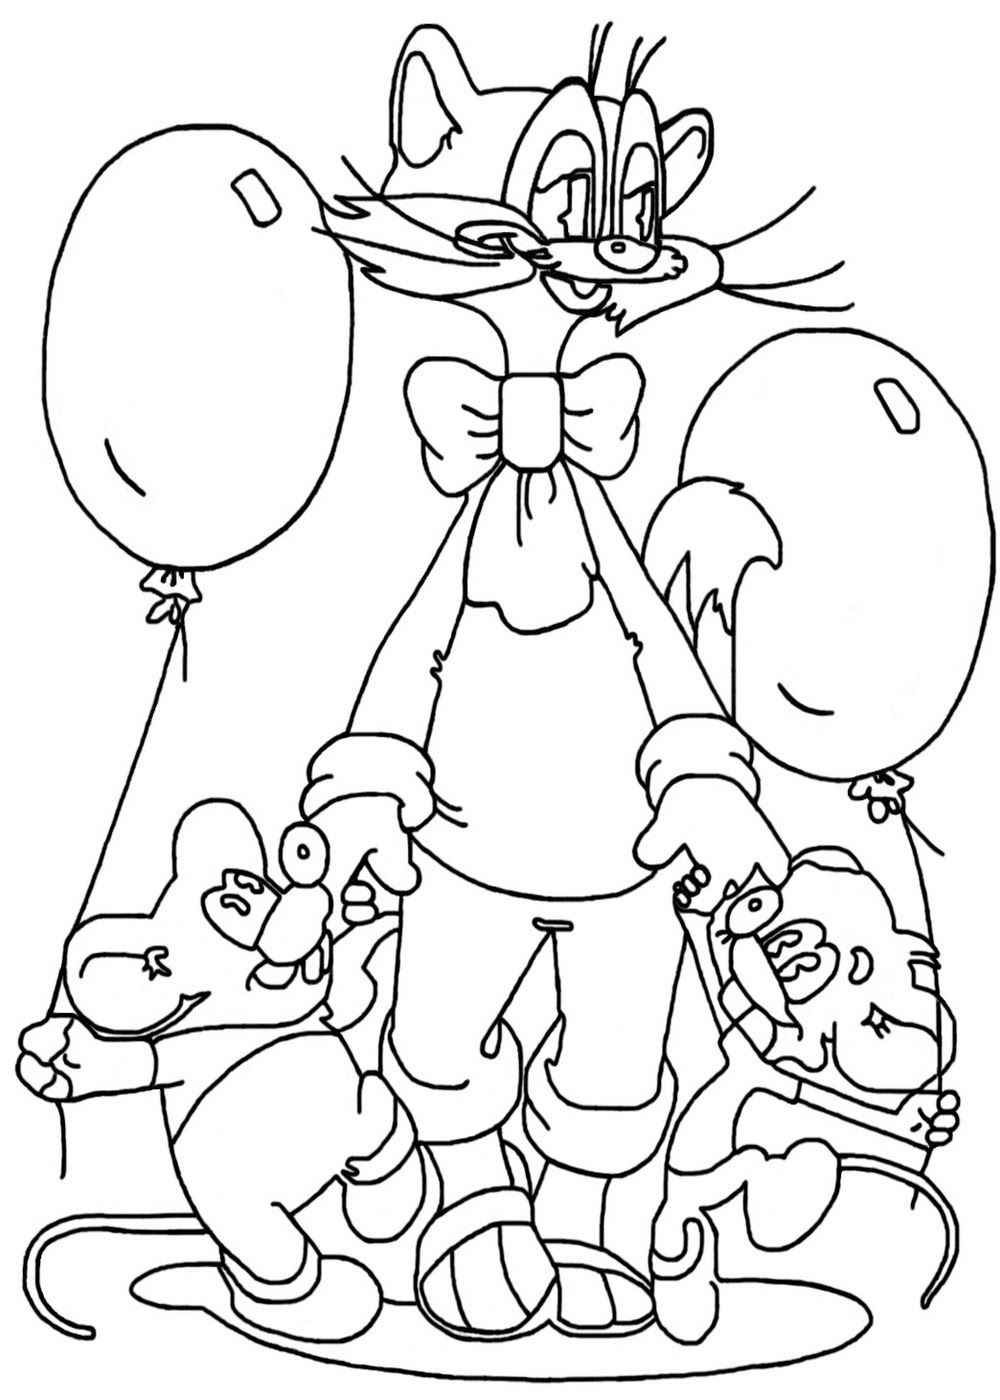 Balloon coloring pages for kids to print for free